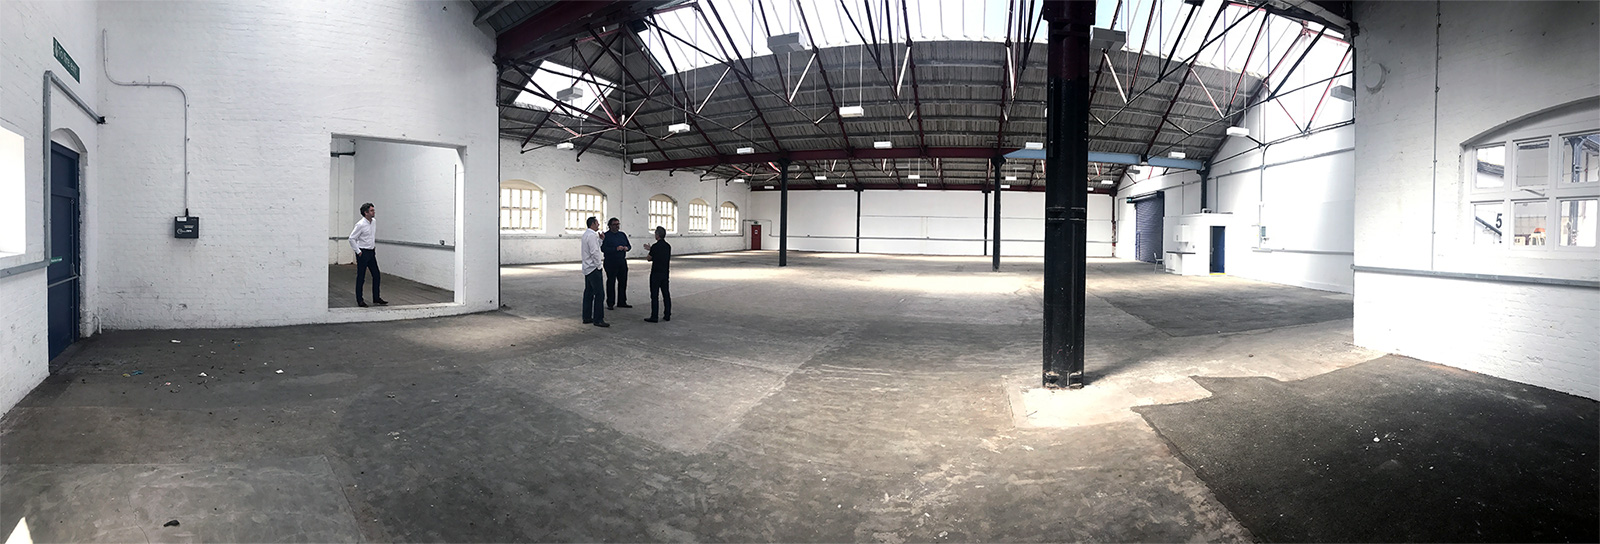 Empty carriage works shed ready for development